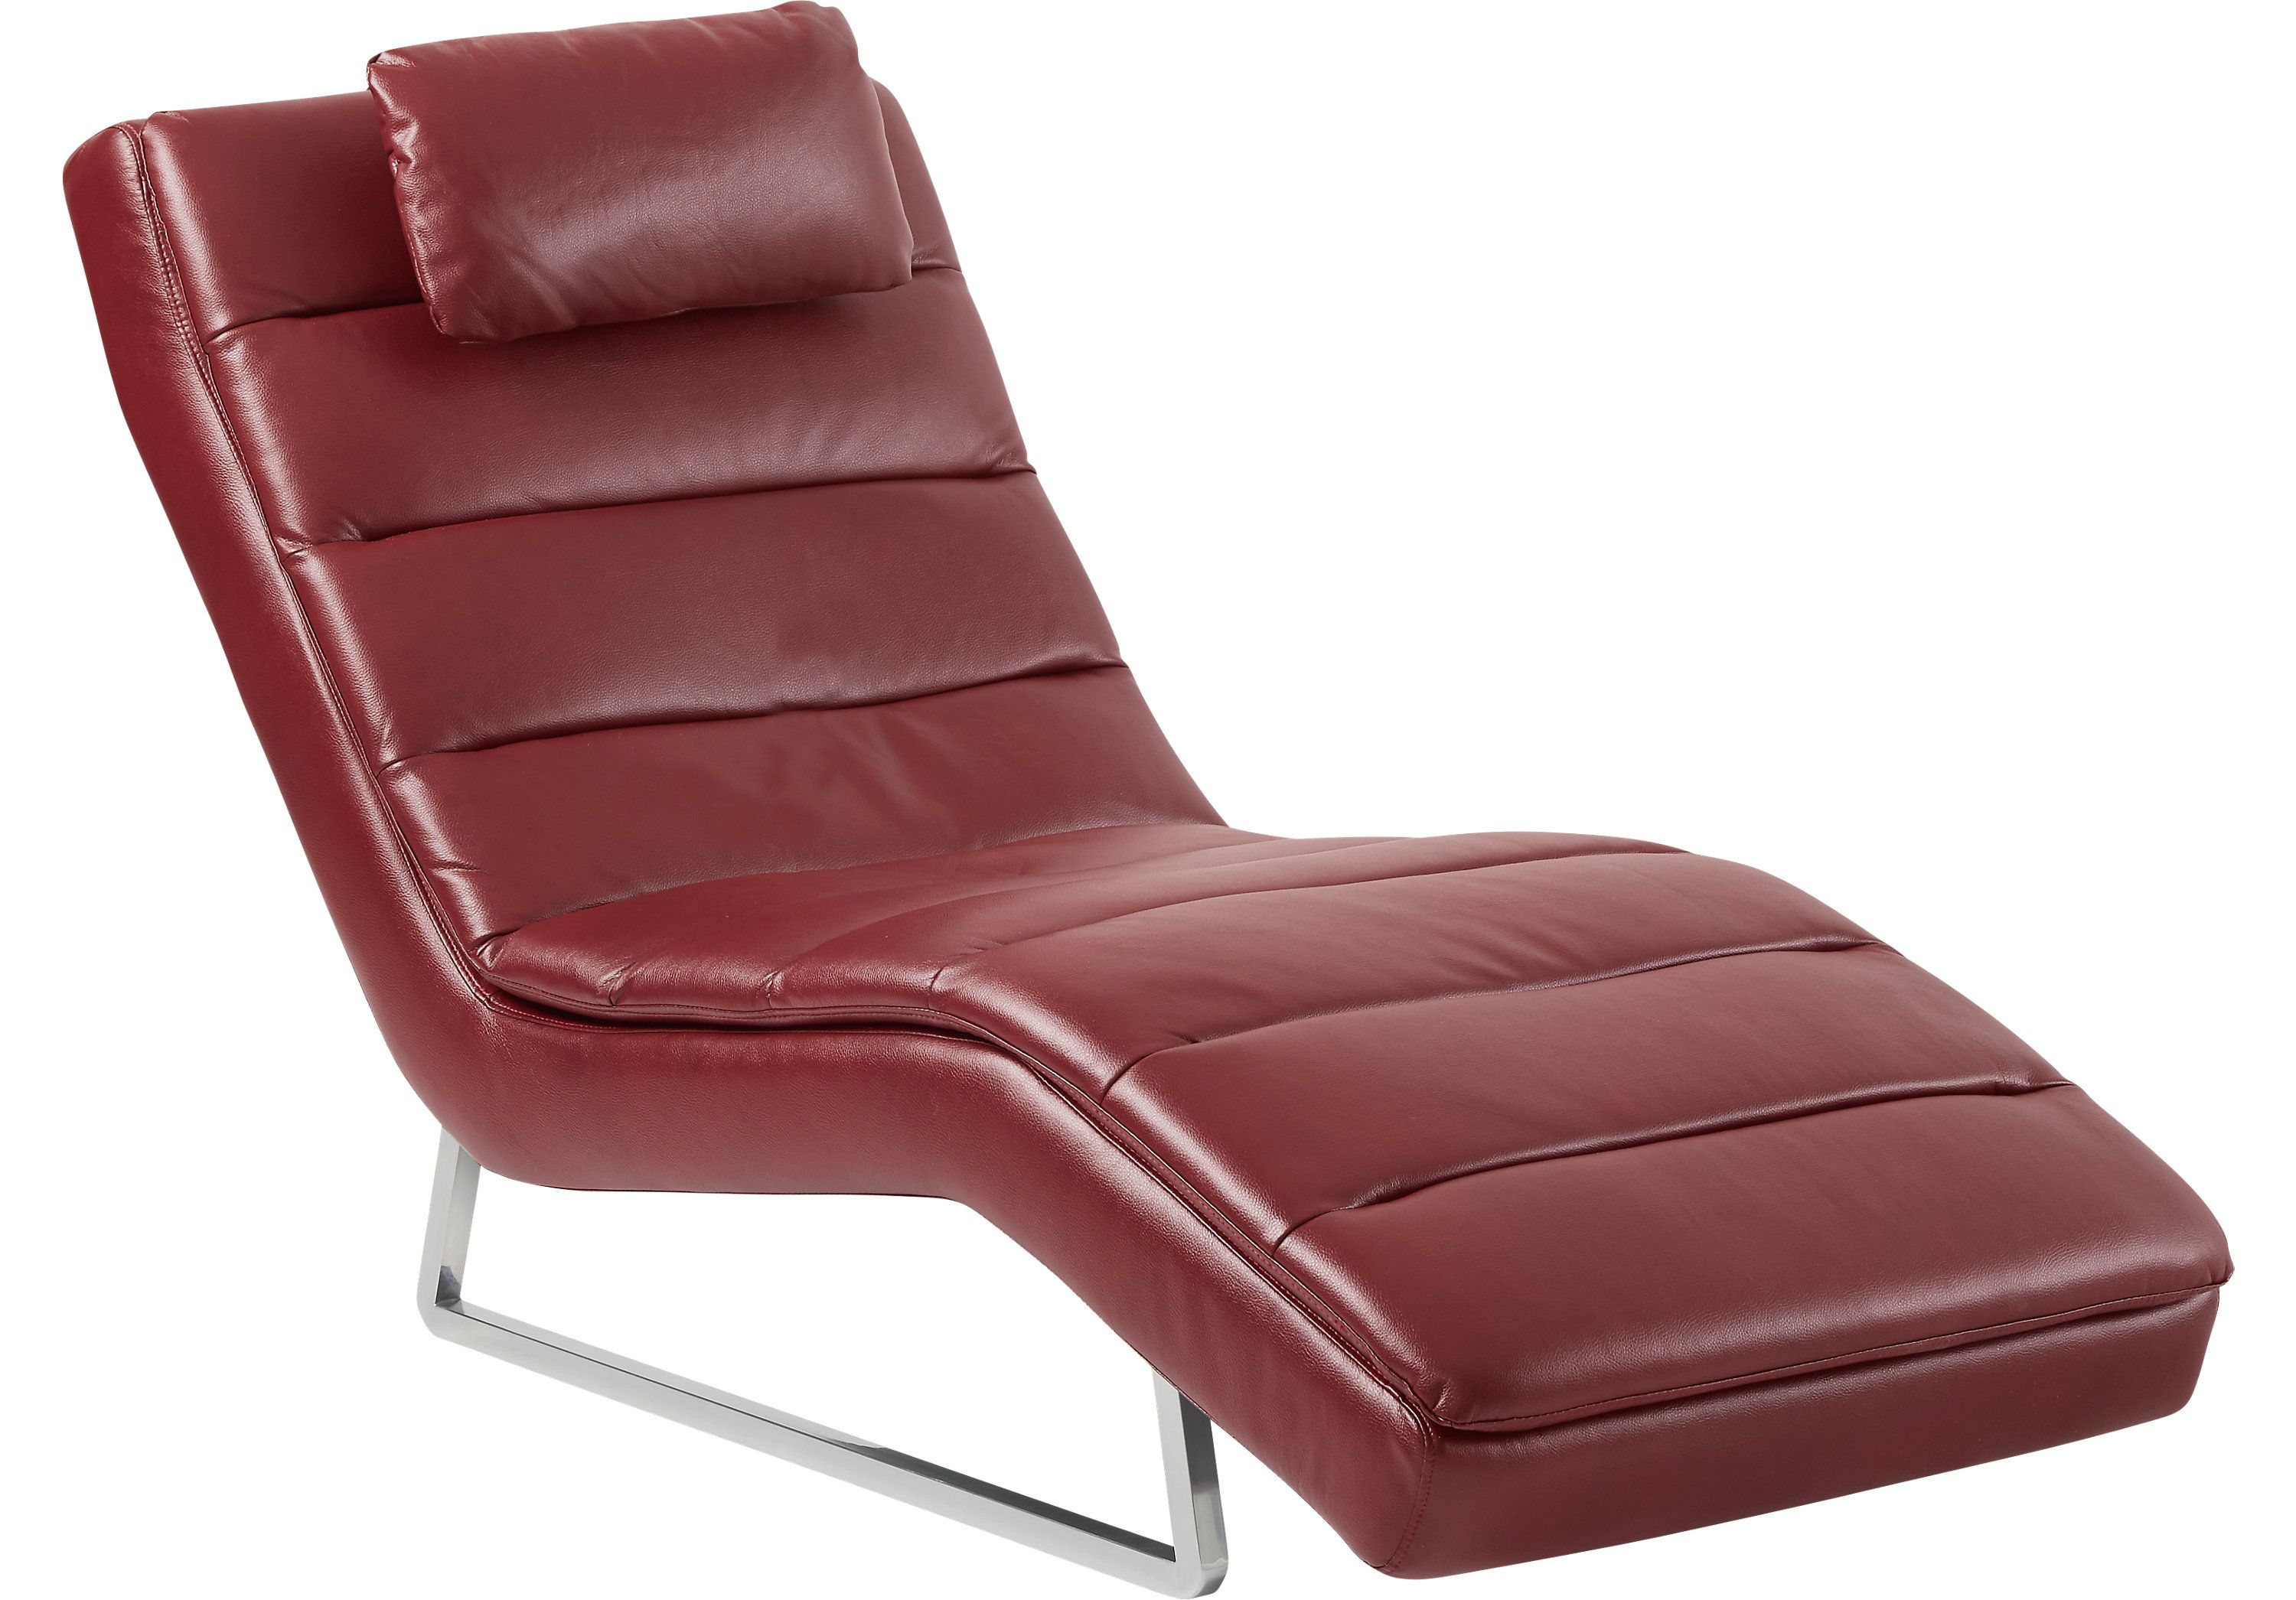 Rombro Red Chaise Chaises Red Rooms To Go Furniture Chaise